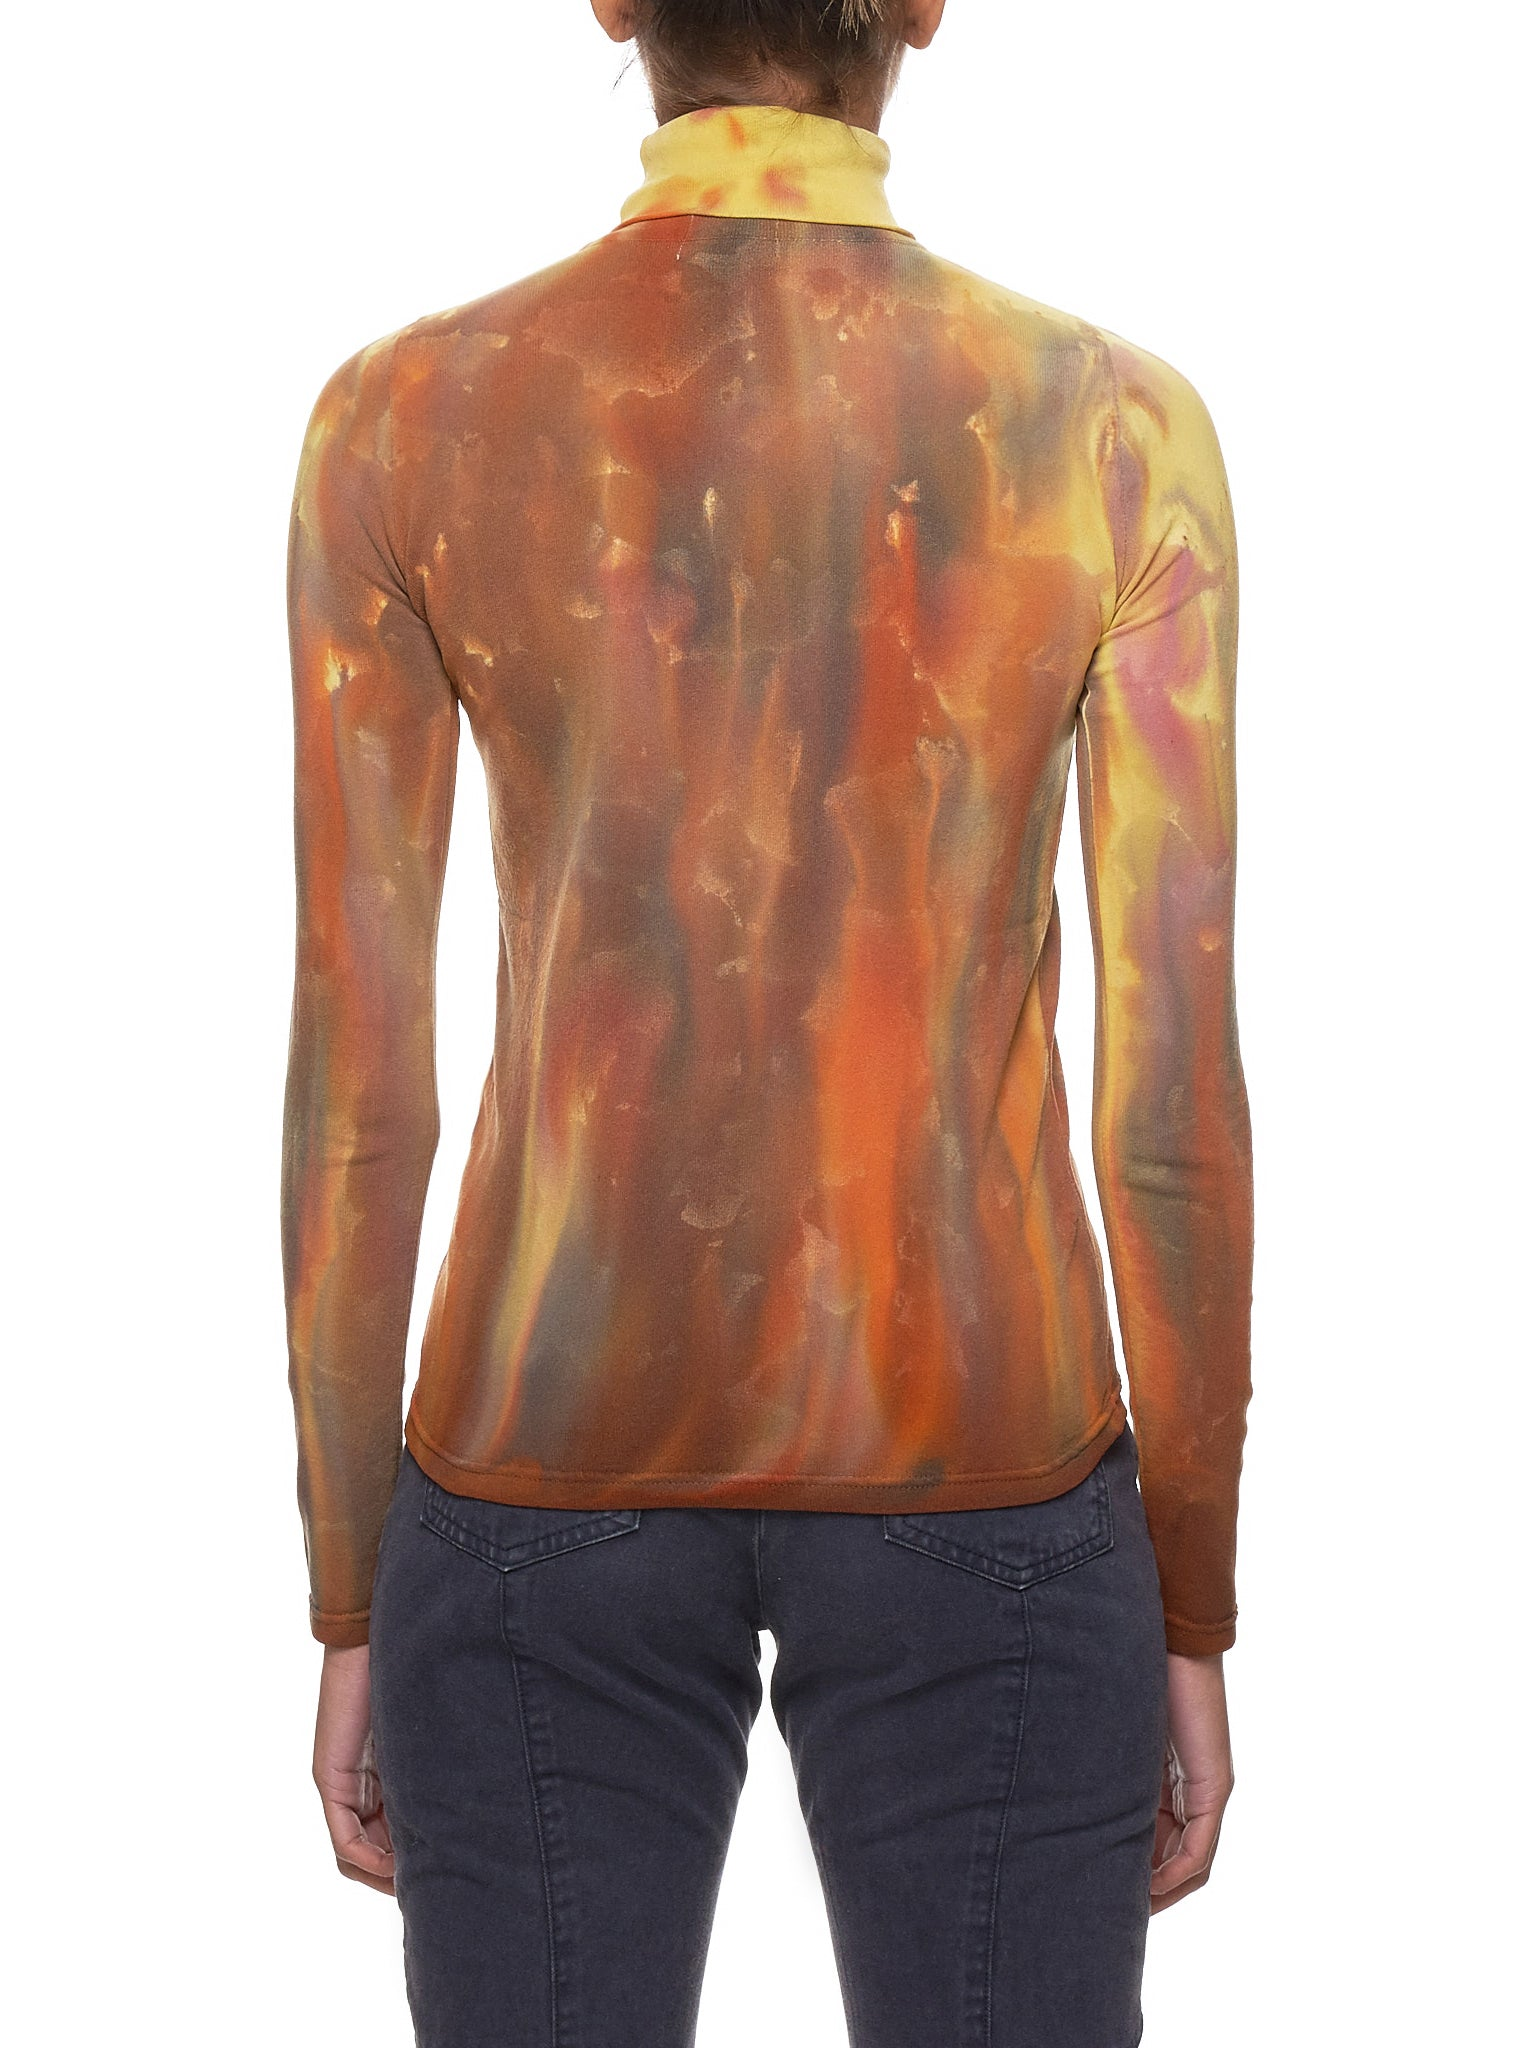 Ambush Tie Dye Top - Hlorenzo Back